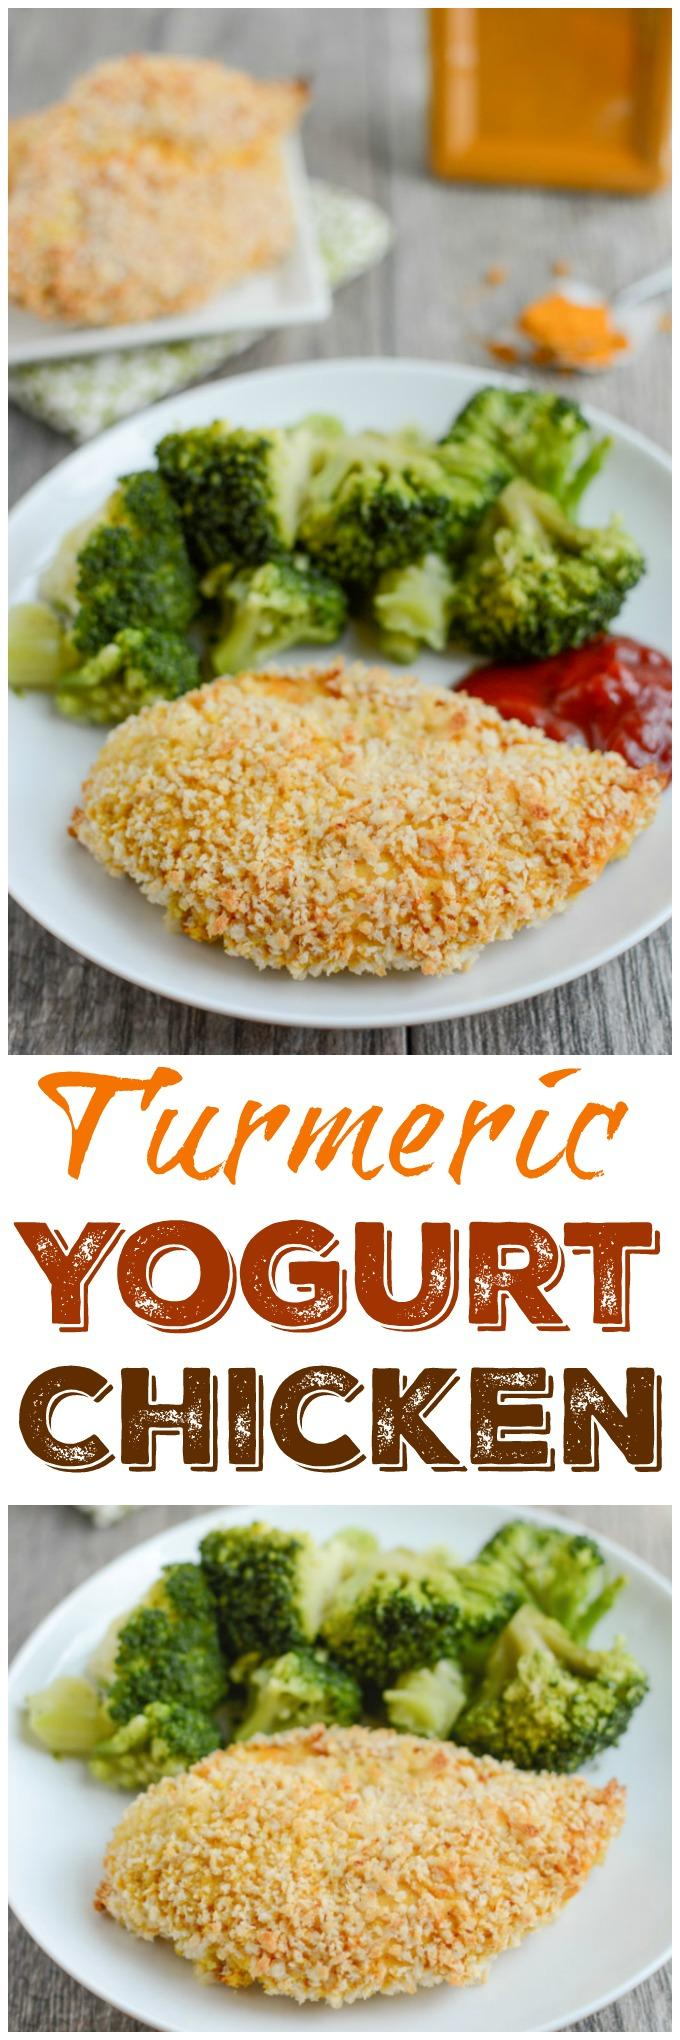 This Turmeric Yogurt Chicken is the perfect food prep recipe. Put the chicken in the marinade ahead of time, then simple coat with breadcrumbs and bake for a quick, healthy dinner!